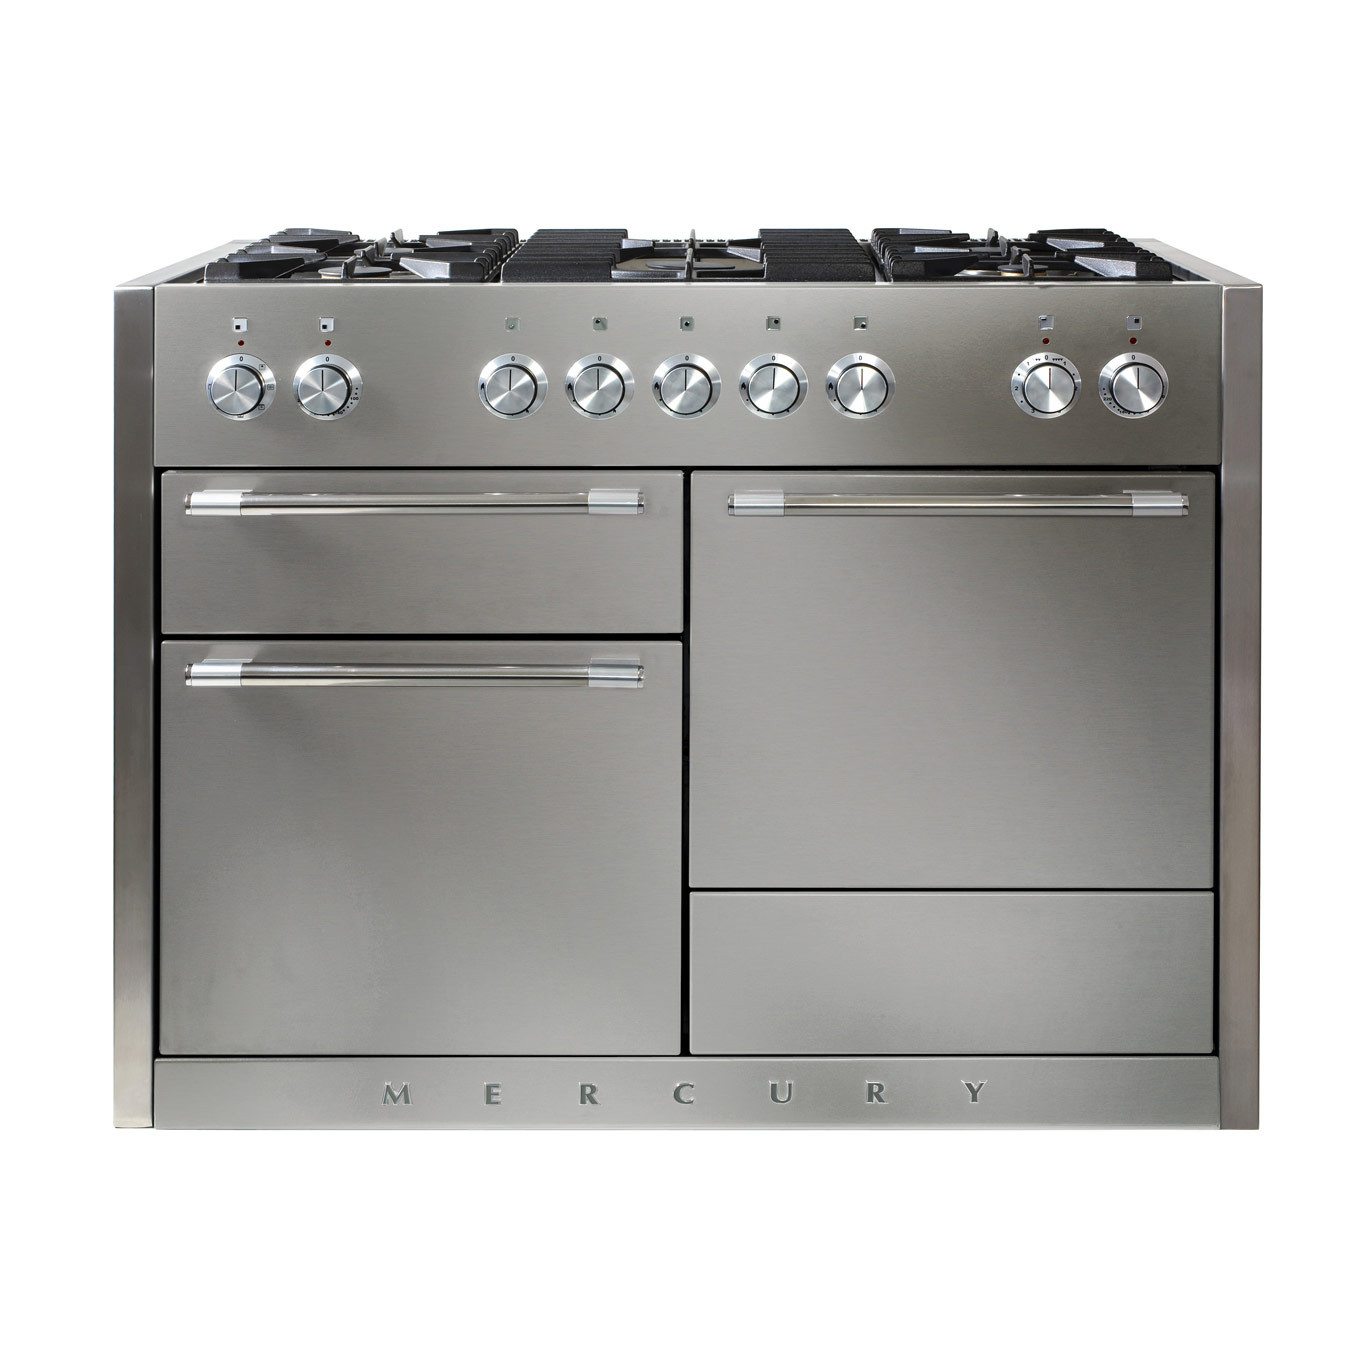 Mercury MCY1200DF Dual Fuel Stainless Steel Range Cooker